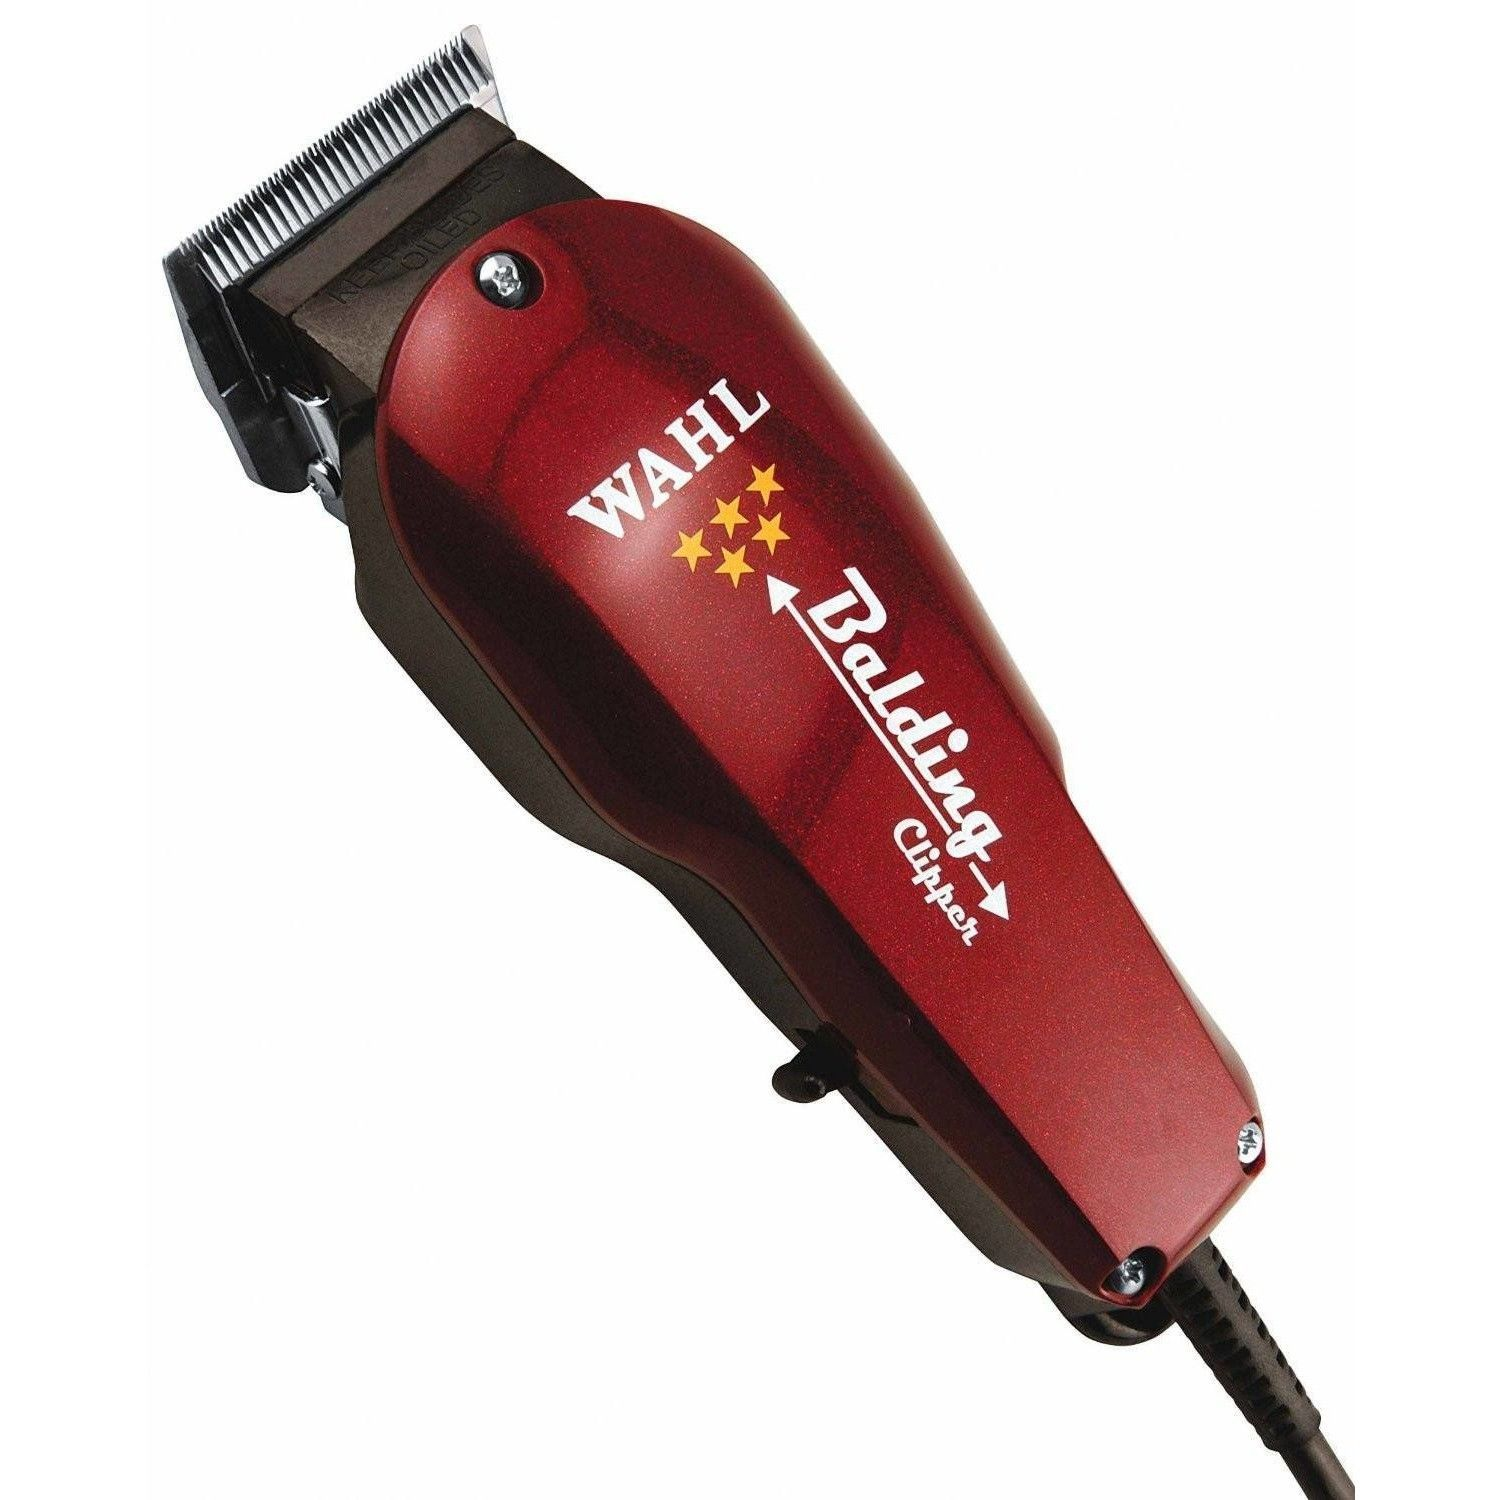 Wahl 5Star Balding Clipper 8110 Barber clippers, Hair